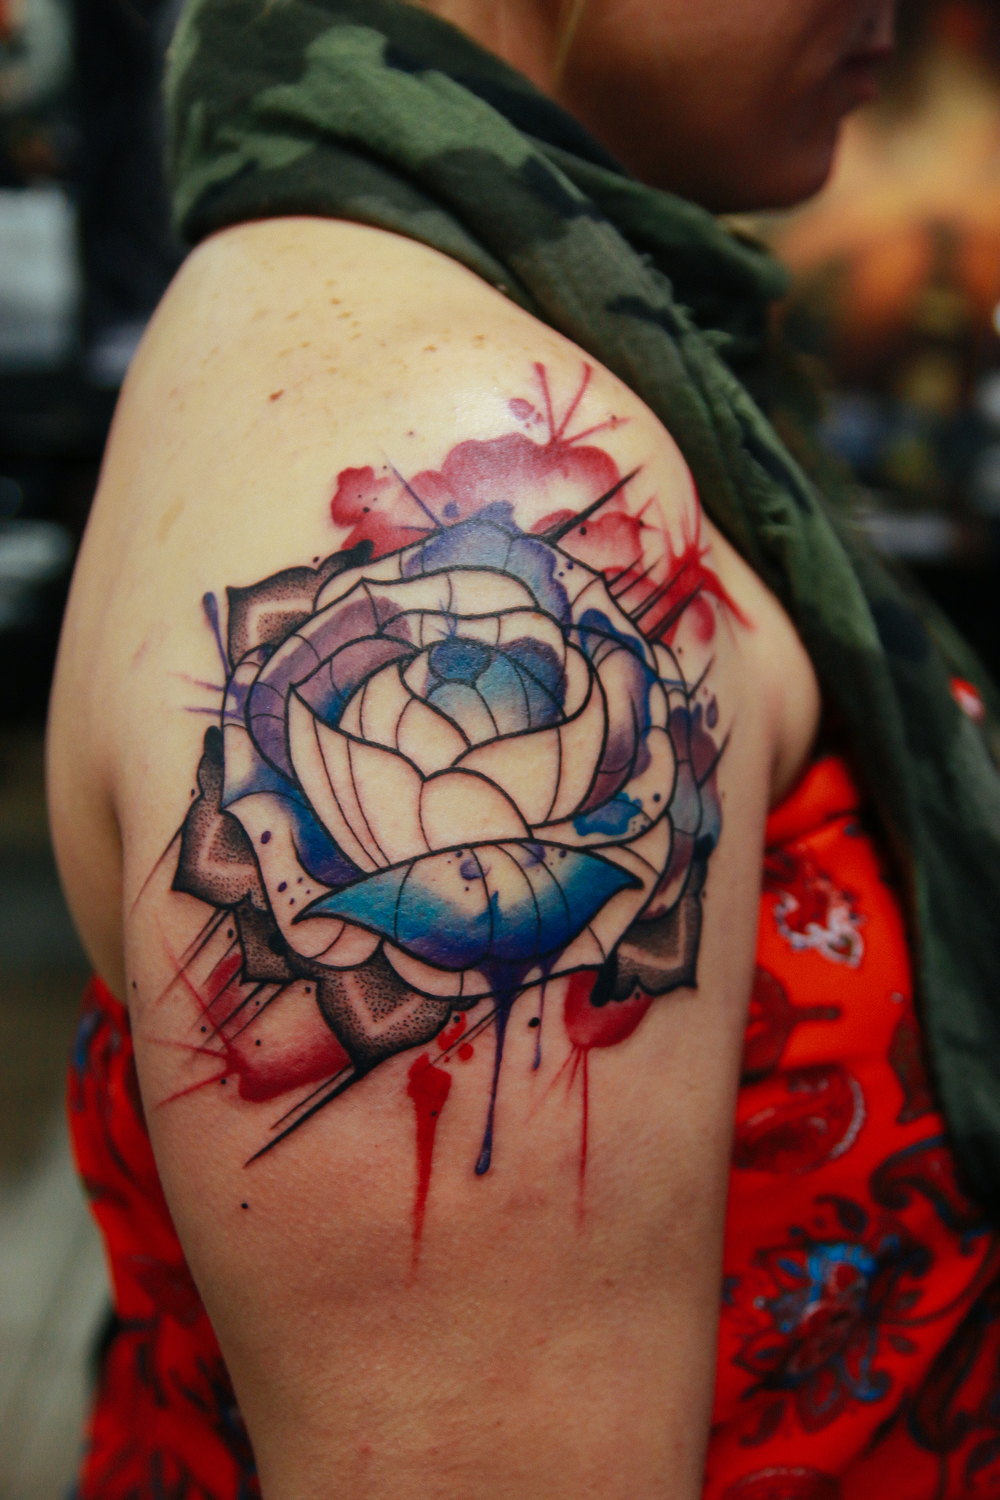 ashla-abstract-tattoo-fyink.jpg